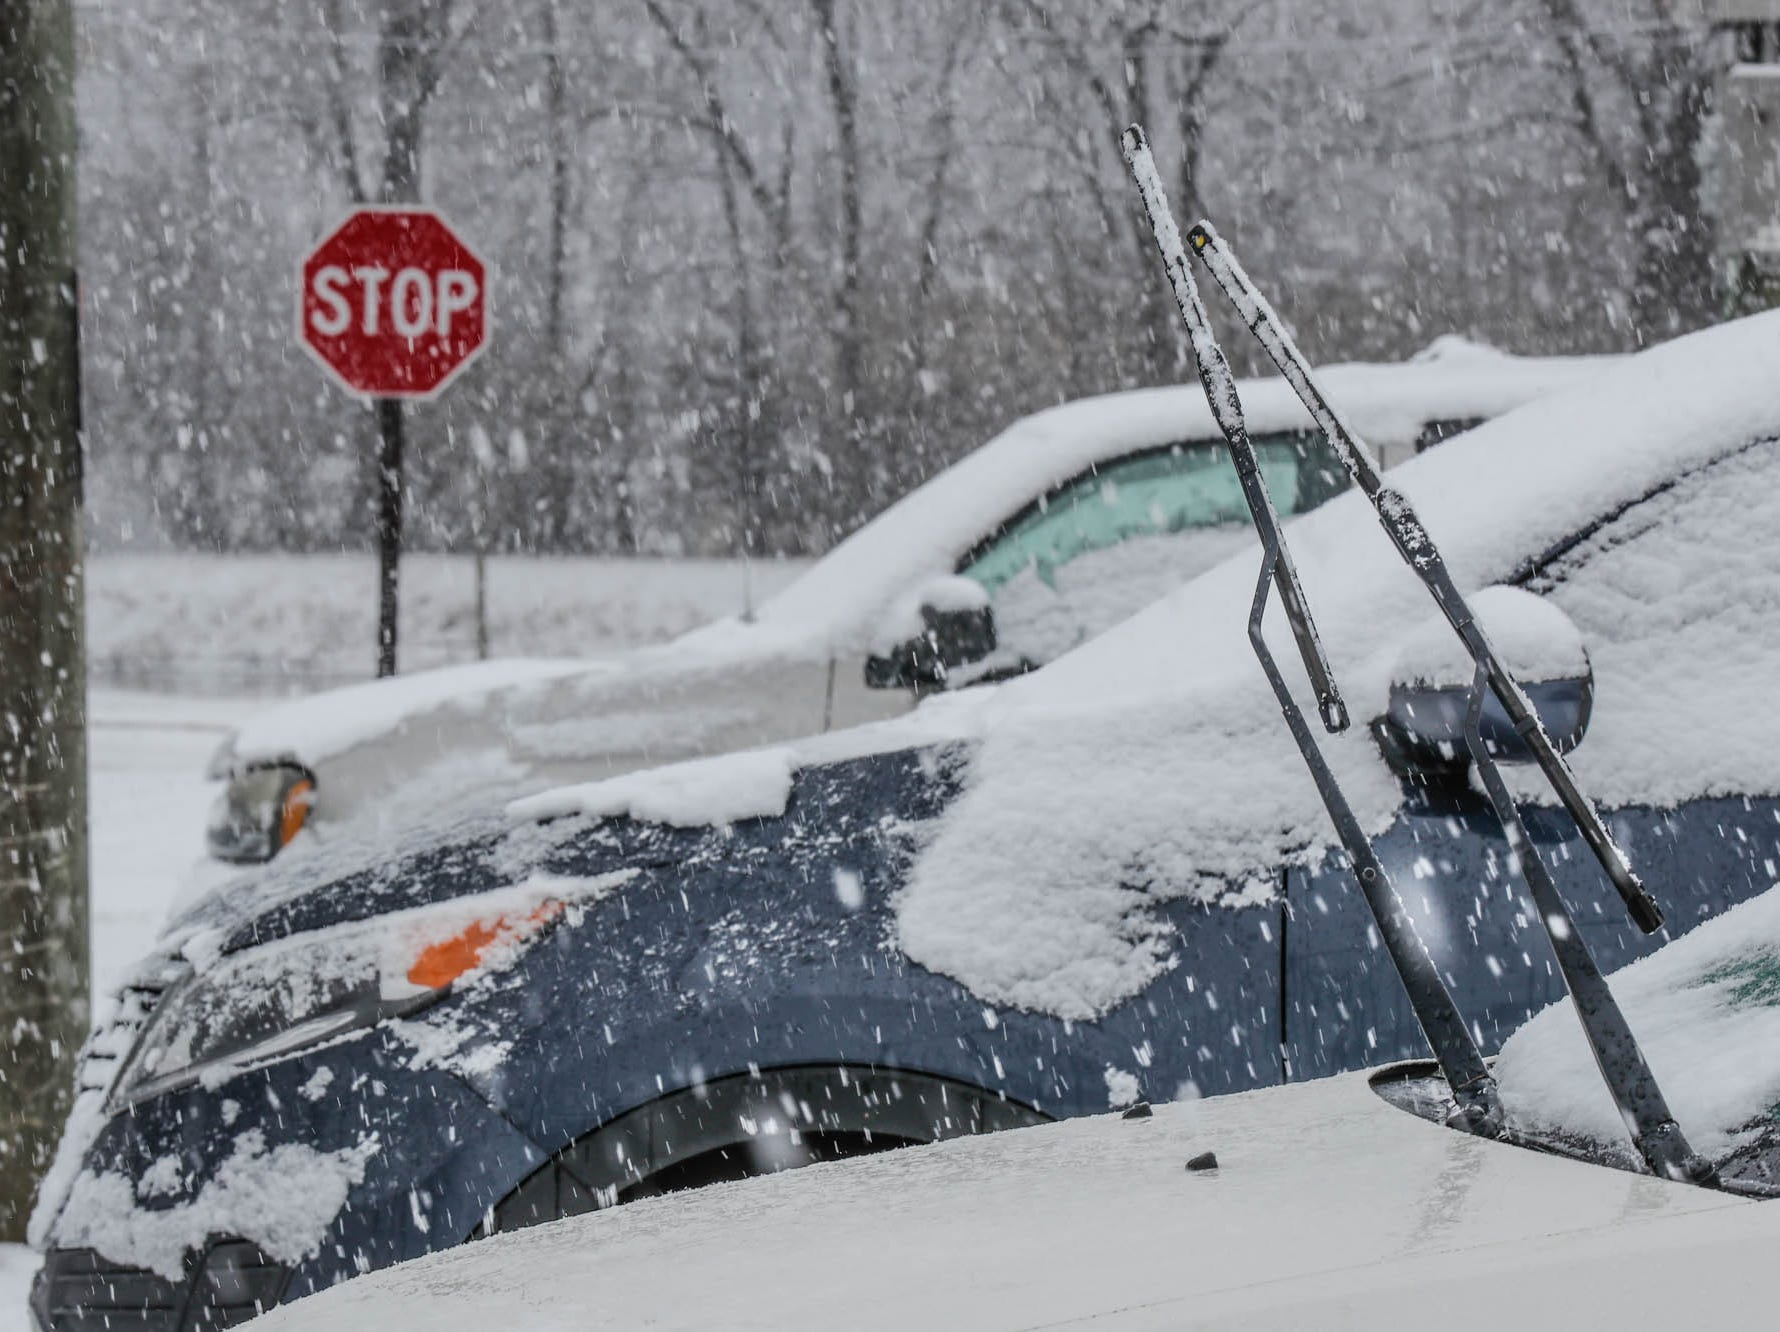 Windshield wipers are pulled up to avoid freezing as now falls in Indianapolis on Sunday, Feb. 10, 2019.